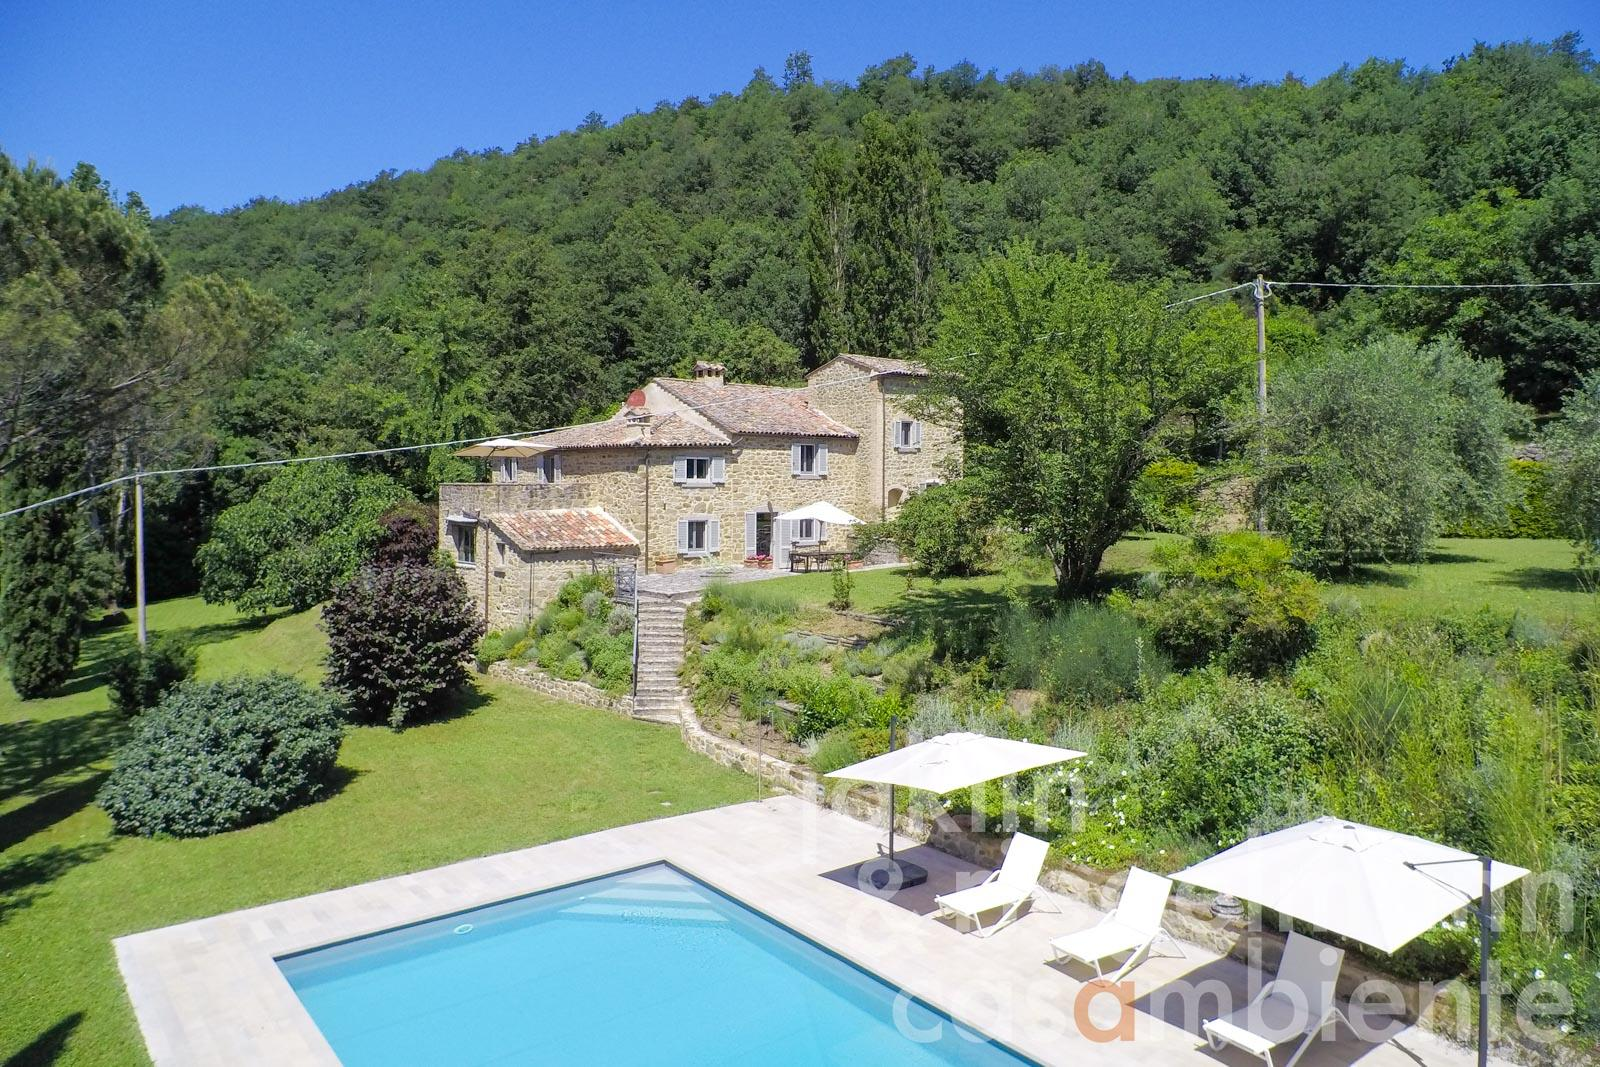 The beautifully restored ancient farmhouse for sale in Tuscany with garden, pool and tennis court